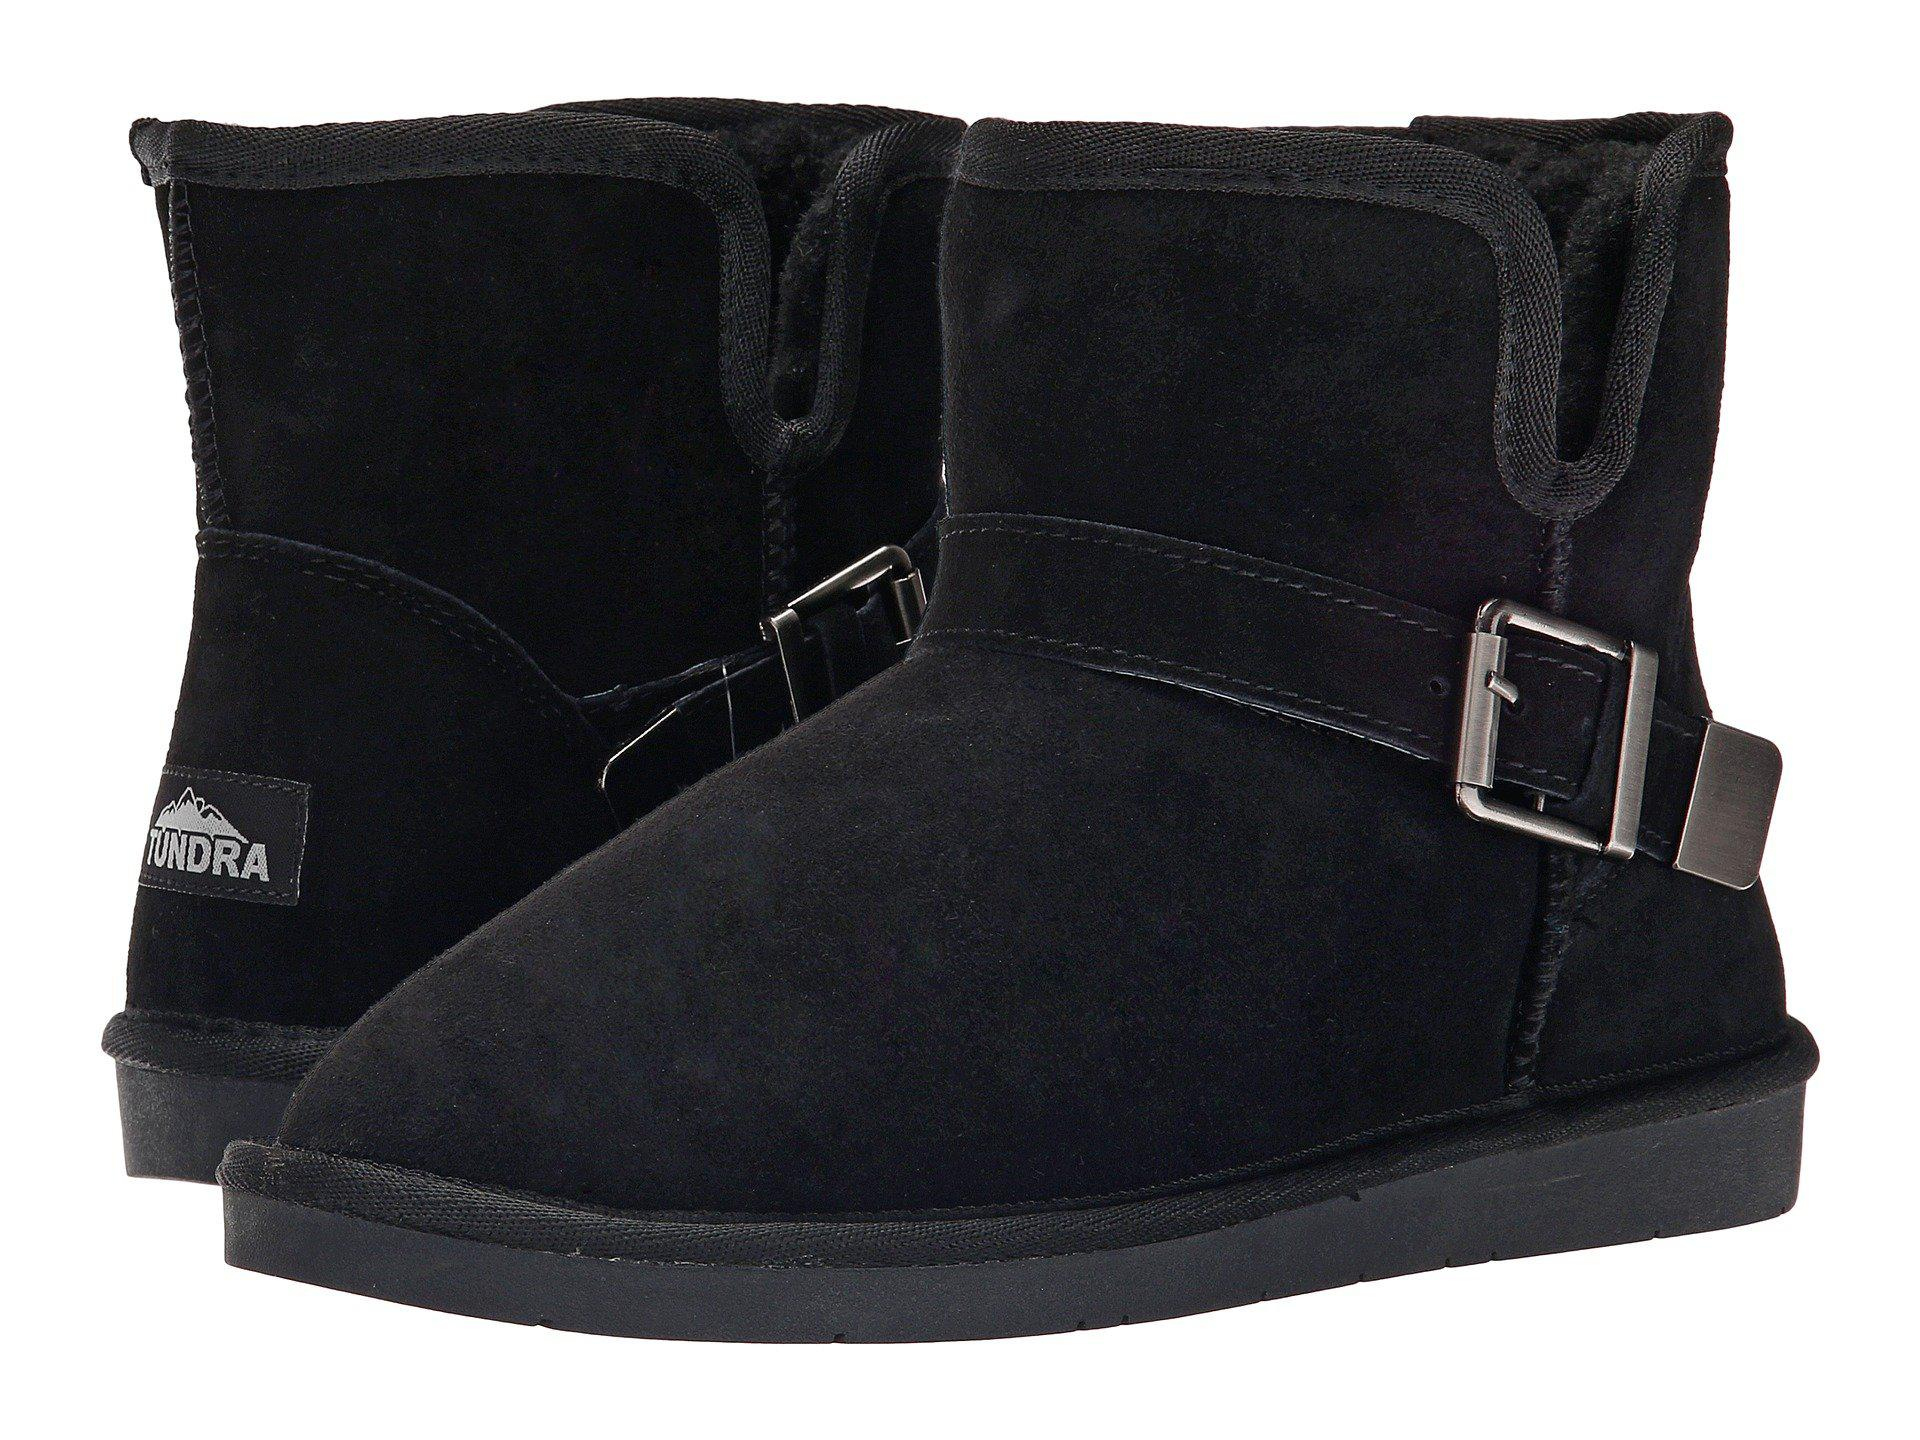 ee442c68c5036 Lyst - Tundra Boots Belmont in Black